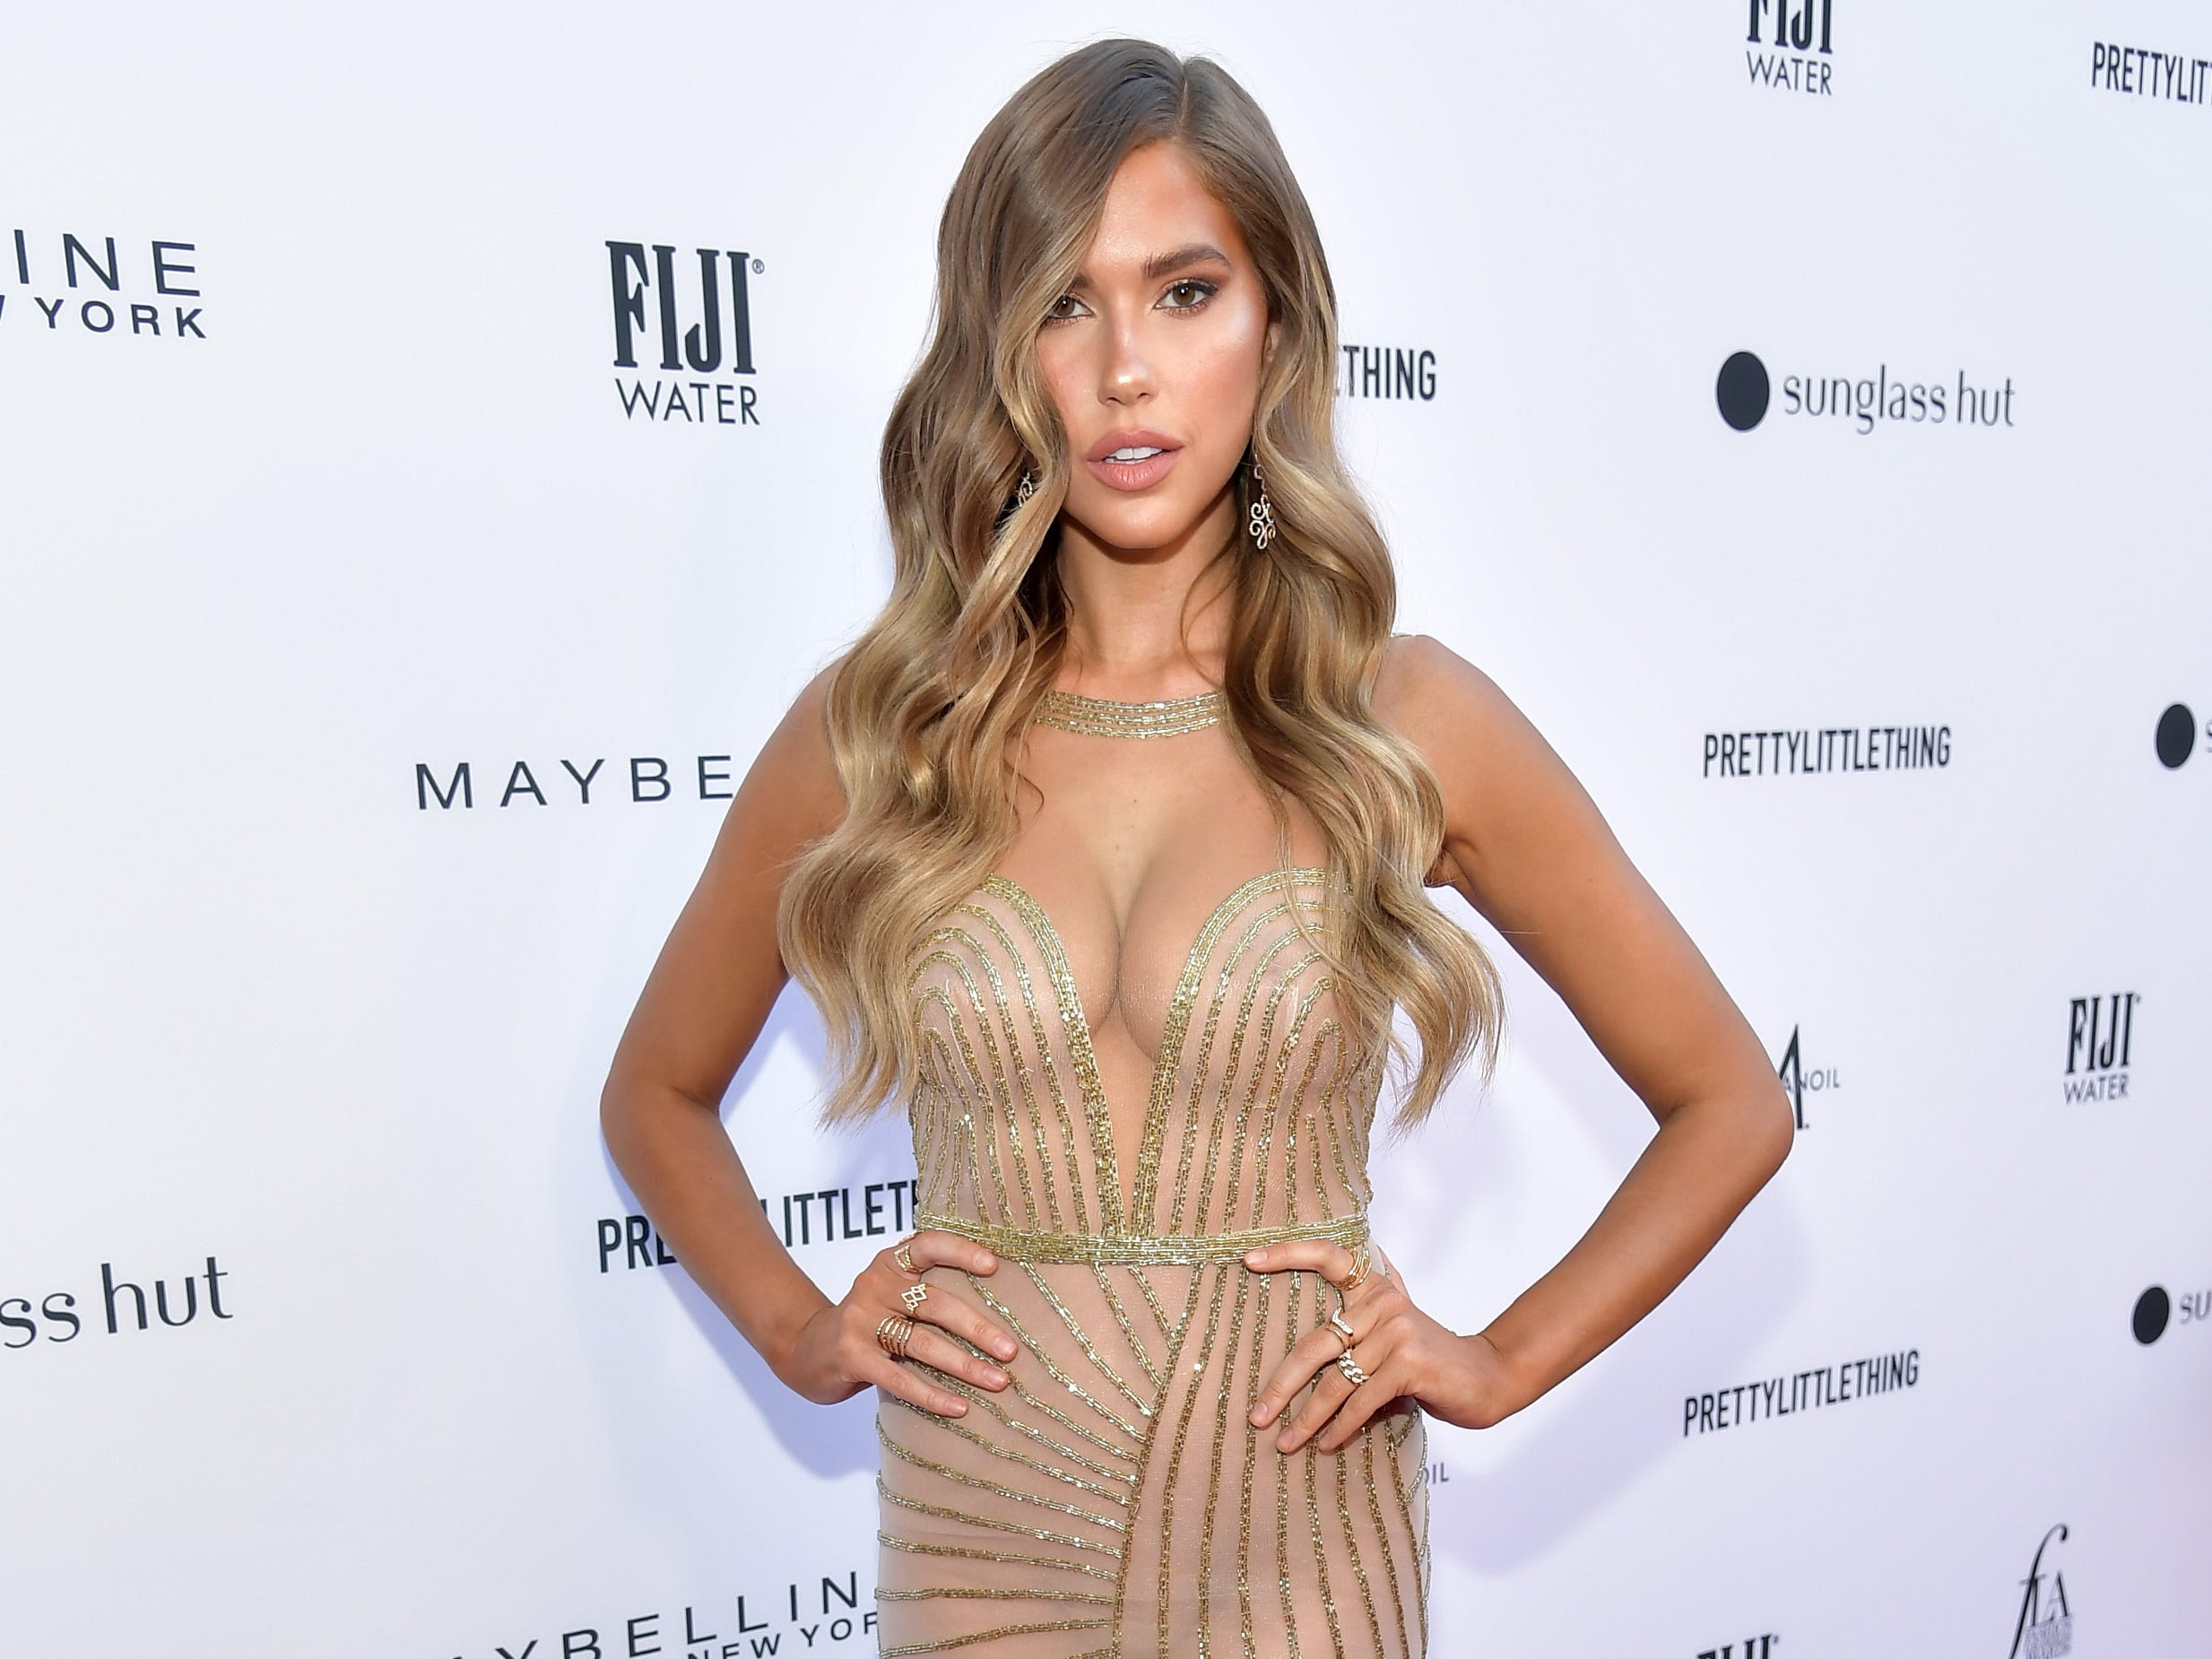 LOS ANGELES, CA - MARCH 17:  Kara Del Toro attends The Daily Front Row Fashion LA Awards 2019 on March 17, 2019 in Los Angeles, California.  (Photo by Neilson Barnard/Getty Images for Daily Front Row) ORG XMIT: 775308010 ORIG FILE ID: 1131289527